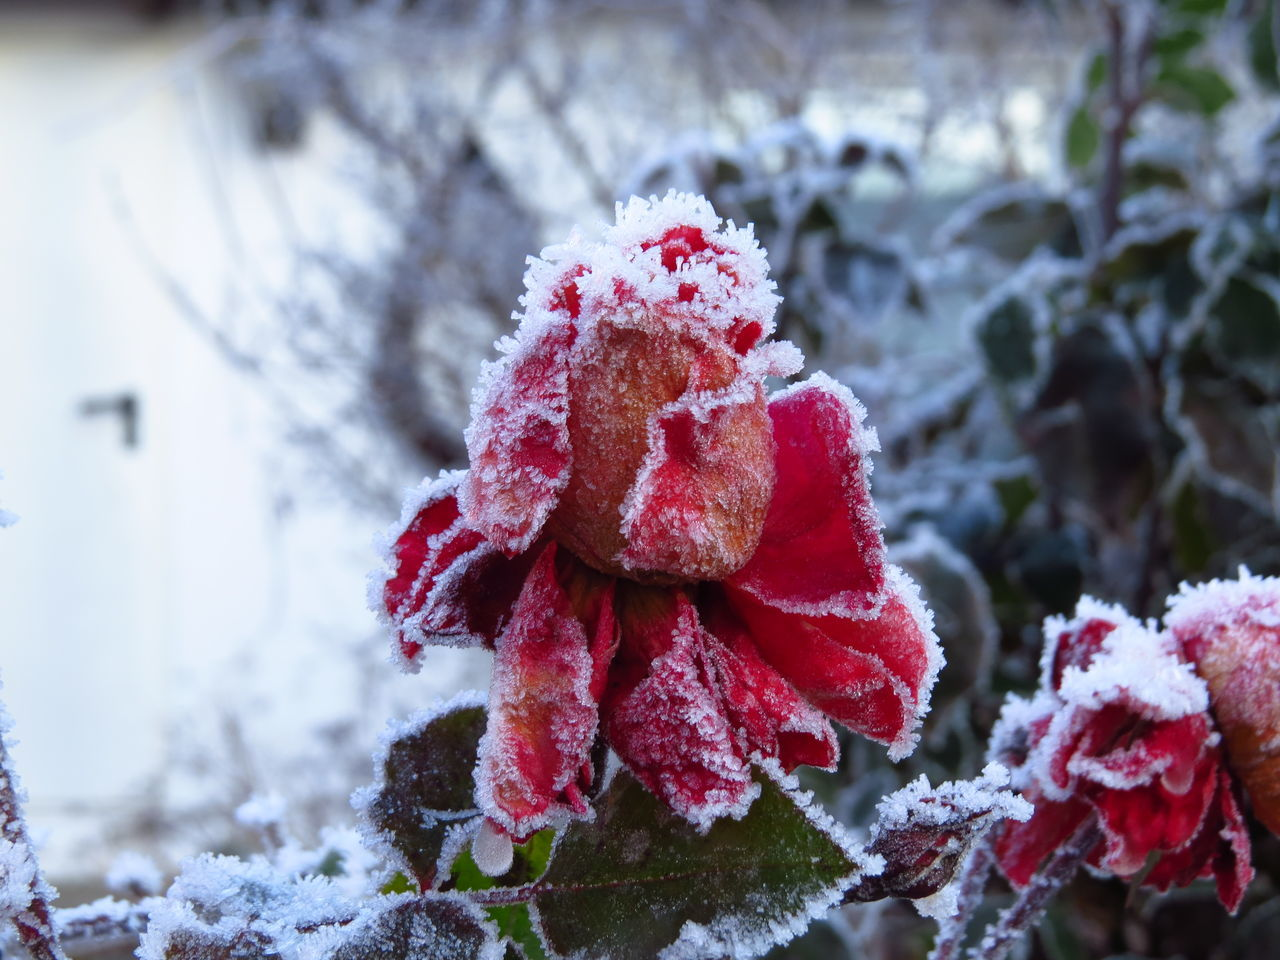 Cold Cold Days Cold Temperature Cold Weather Flower Head Fragility Frost Frosty Frosty Mornings Frozen Frozen Nature Hoar Frost Hoarfrost Icy Rime Rose - Flower Roses White Frost Winter Winter Scene Winter Scenery Winter Season Winter Wonderland Winter_collection Wintertime